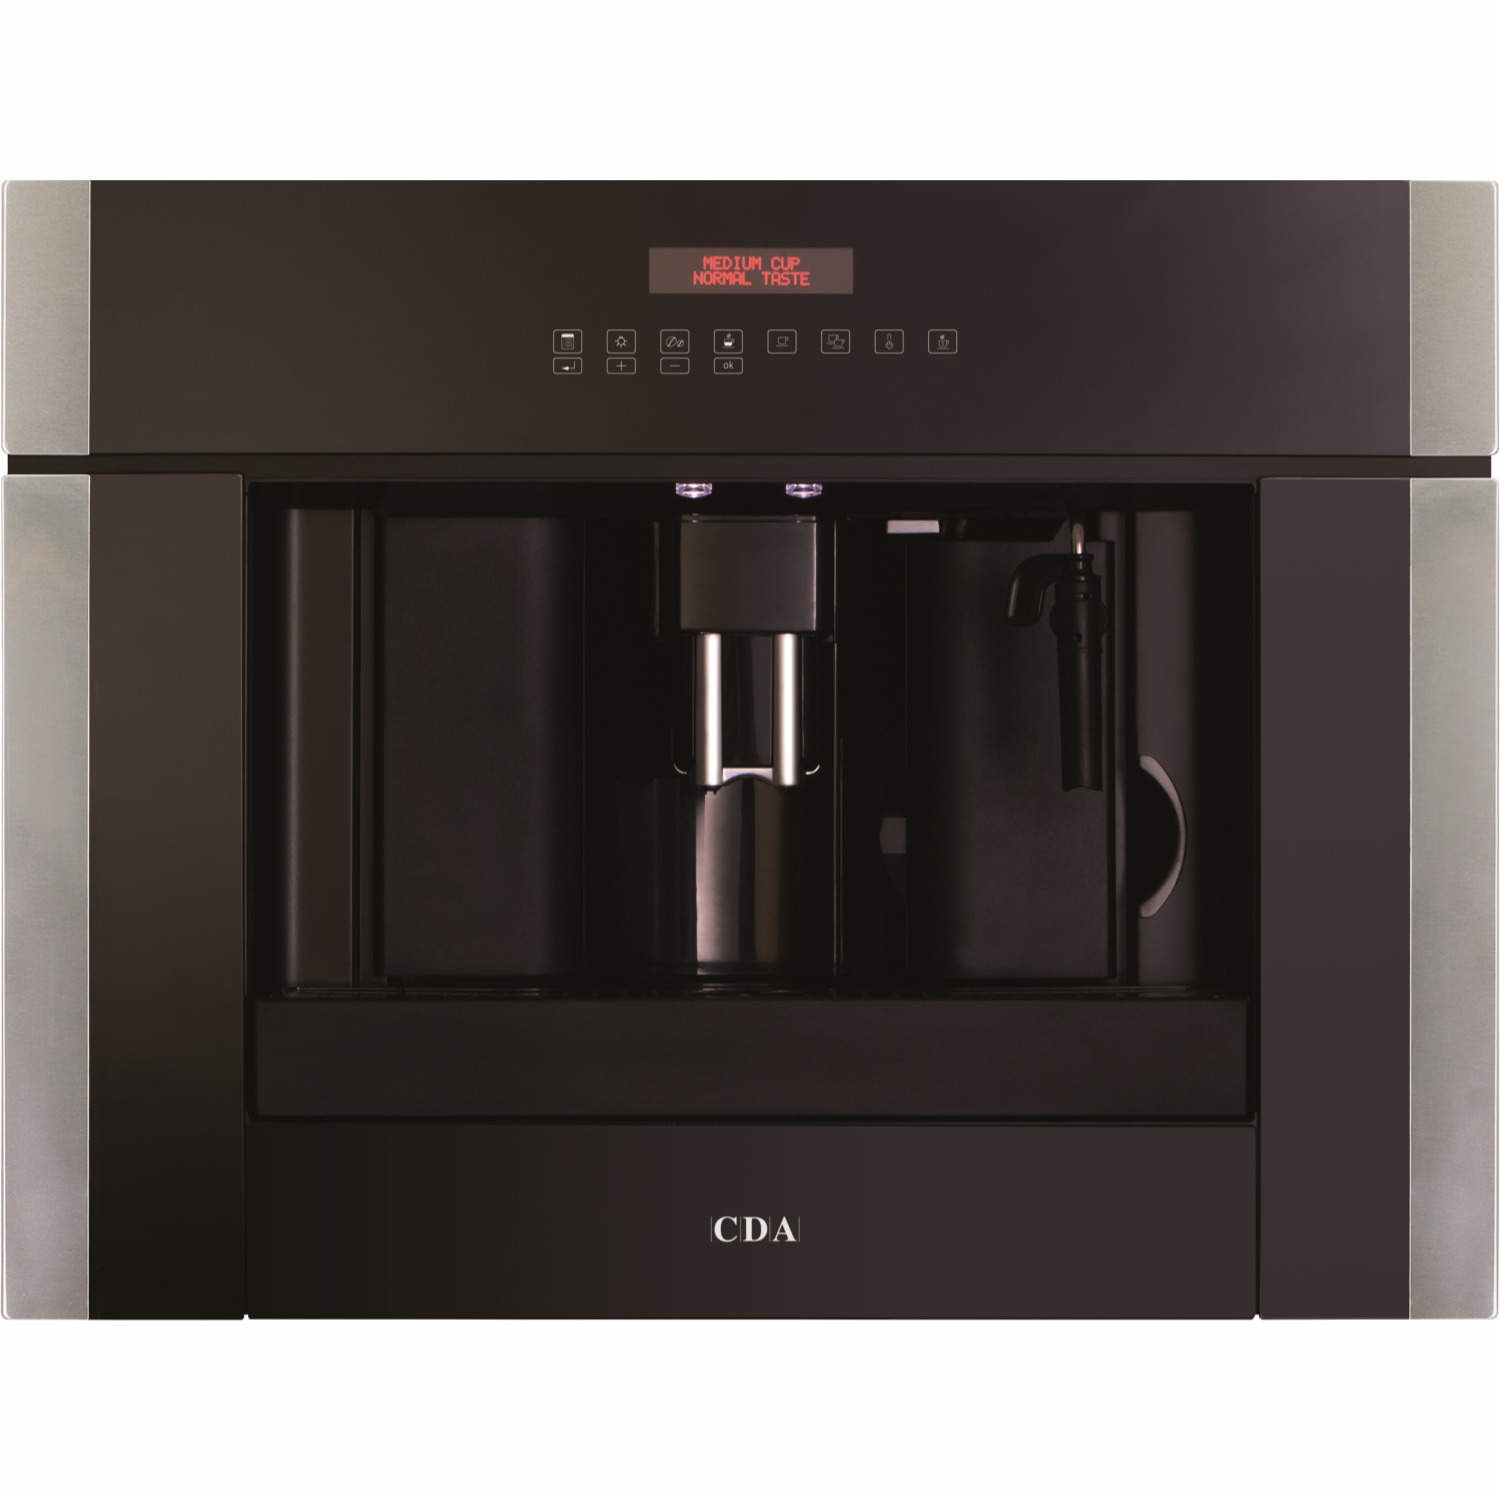 cda vc801ss fully automatic builtin coffee maker stainless steel